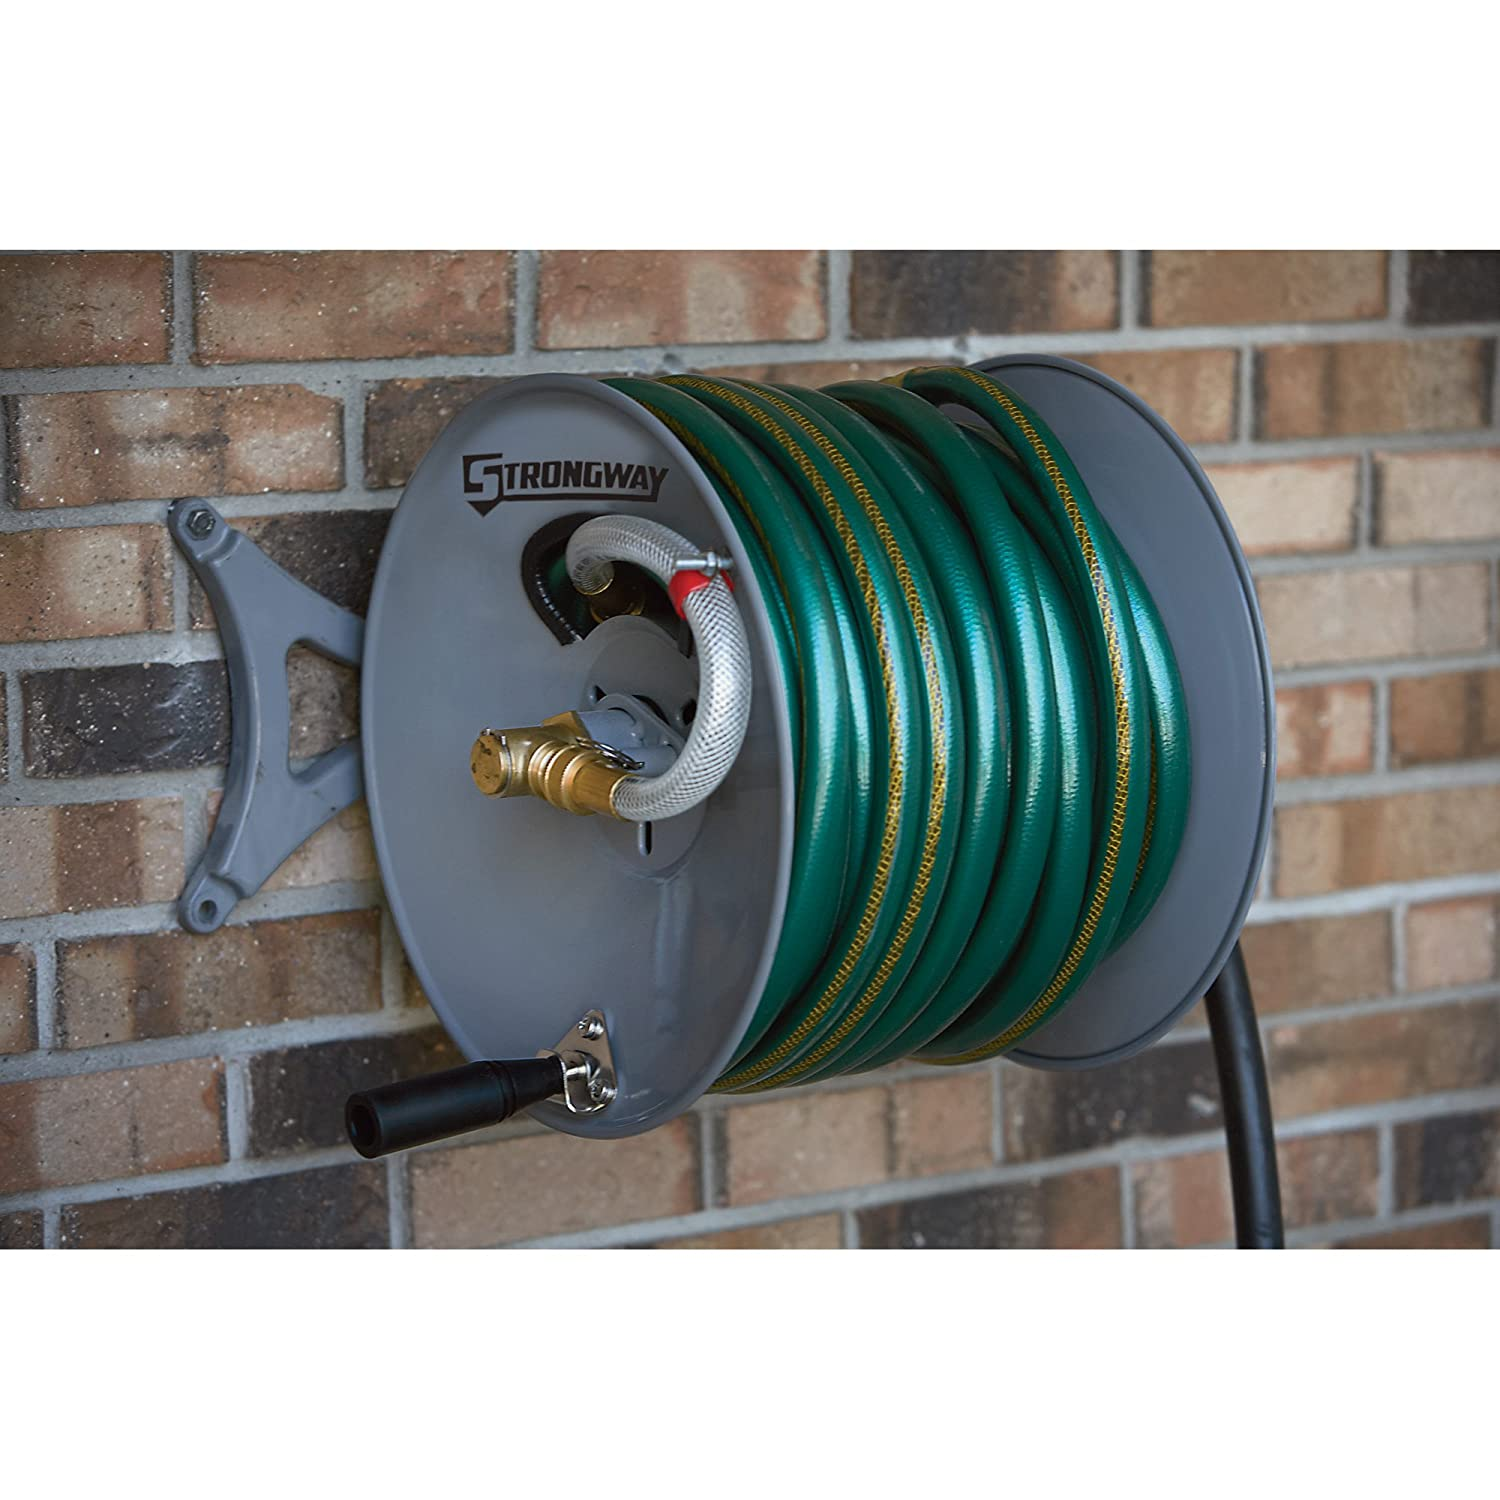 Lovely Strongway Parallel Or Perpendicular Wall Mount Garden Hose Reel   Holds  150ft. X 5/8in. Hose: Amazon.ca: Patio, Lawn U0026 Garden